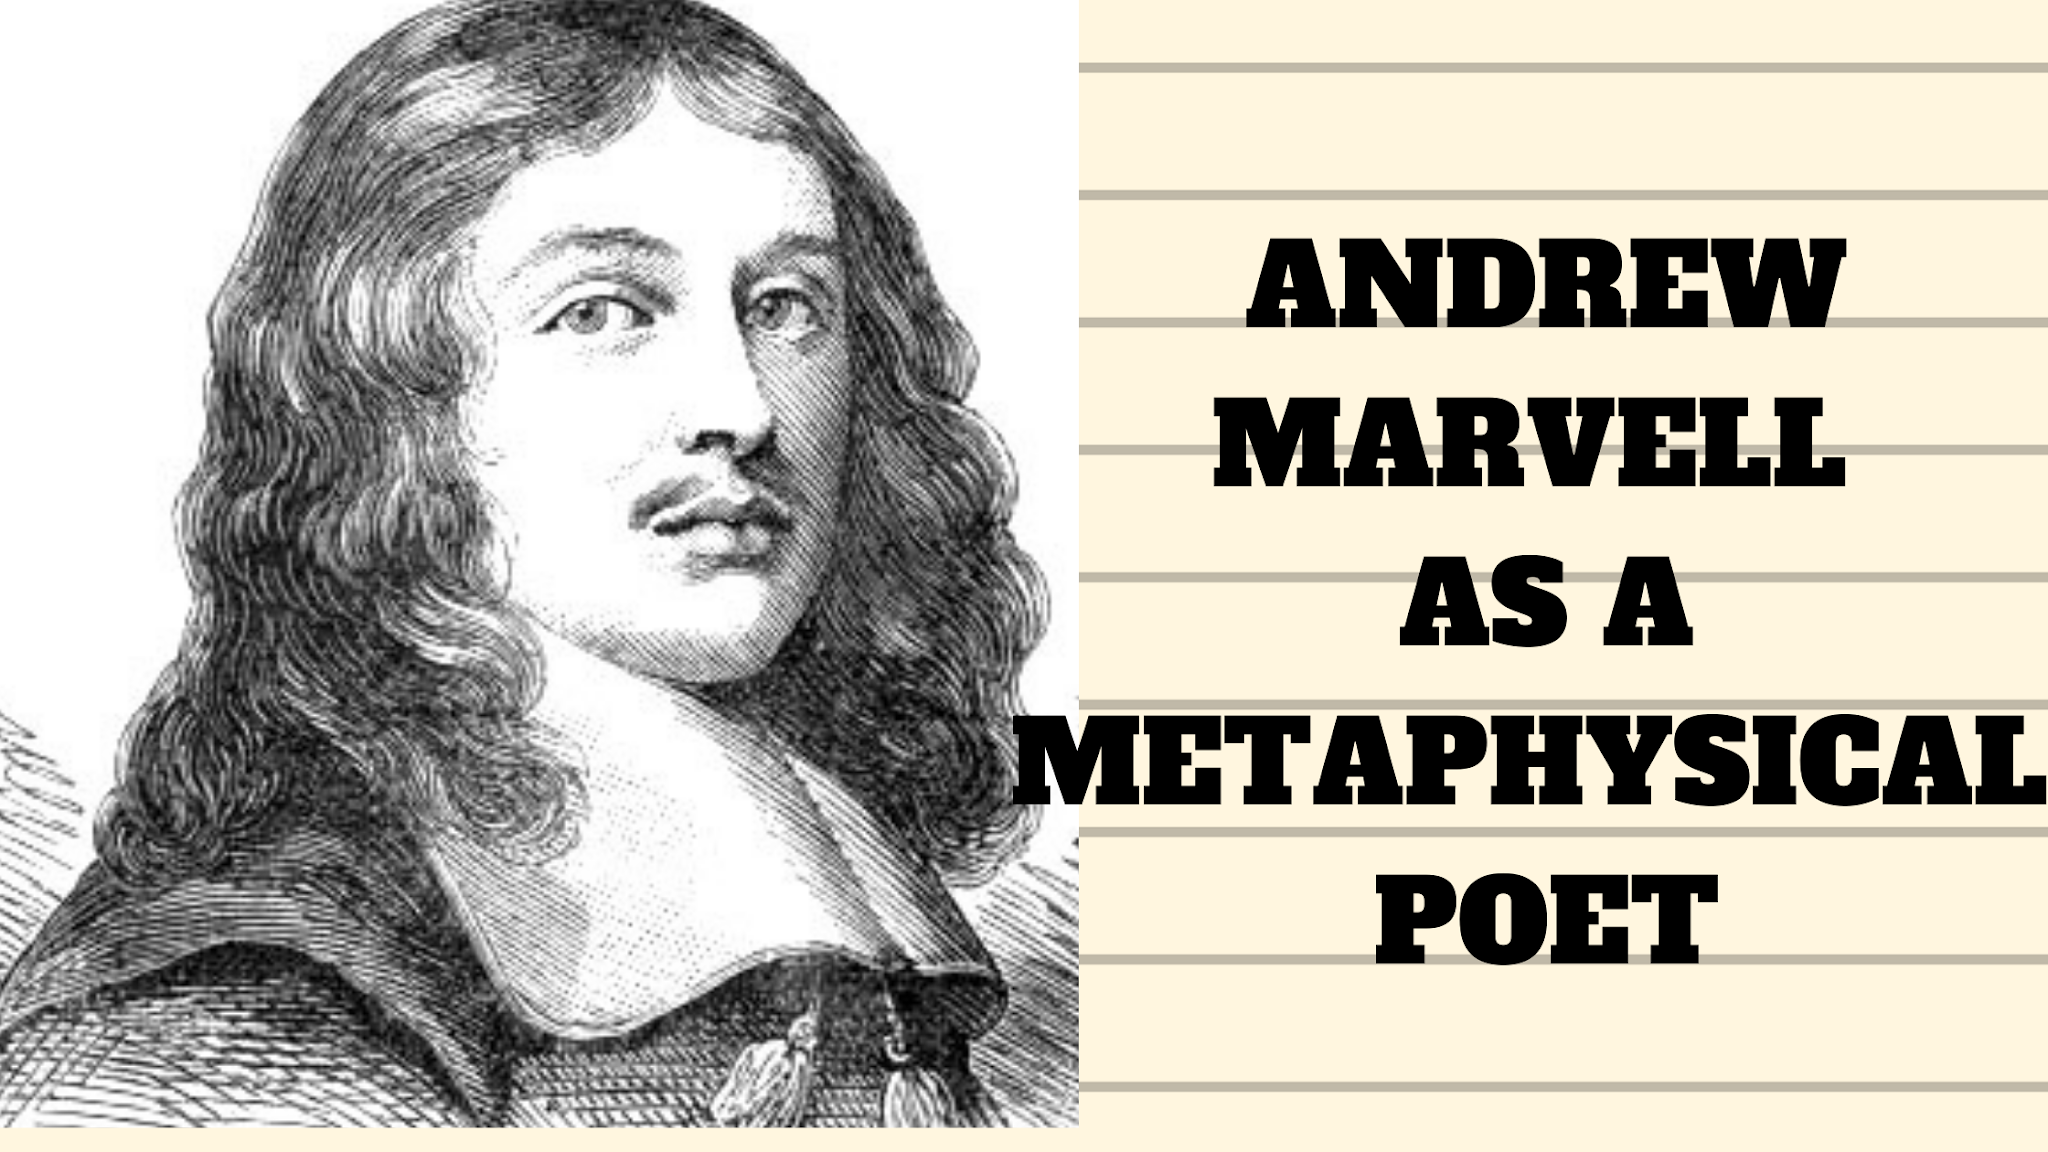 Assess Andrew Marvell as a Metaphysical Poet